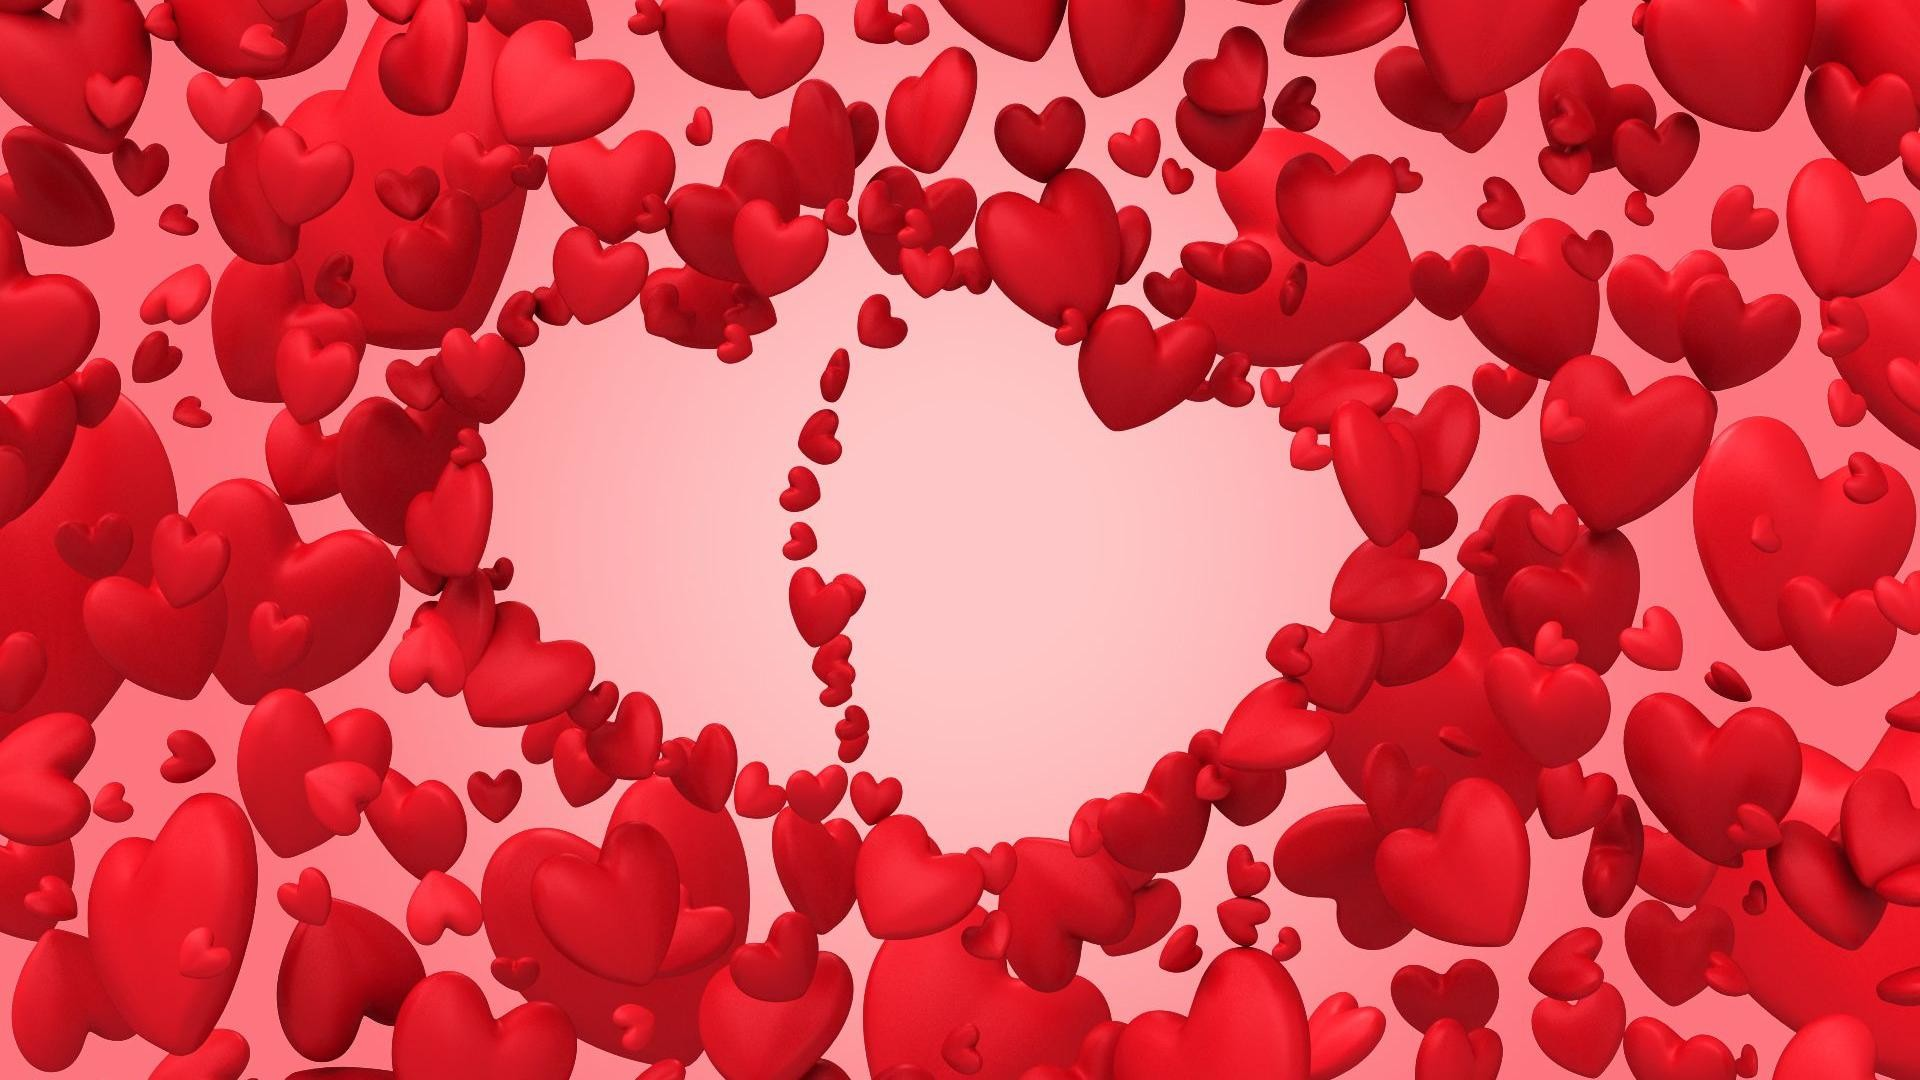 Valentine Day Heart Wallpapers HD Wallpaper of Love – hdwallpaper2013 .